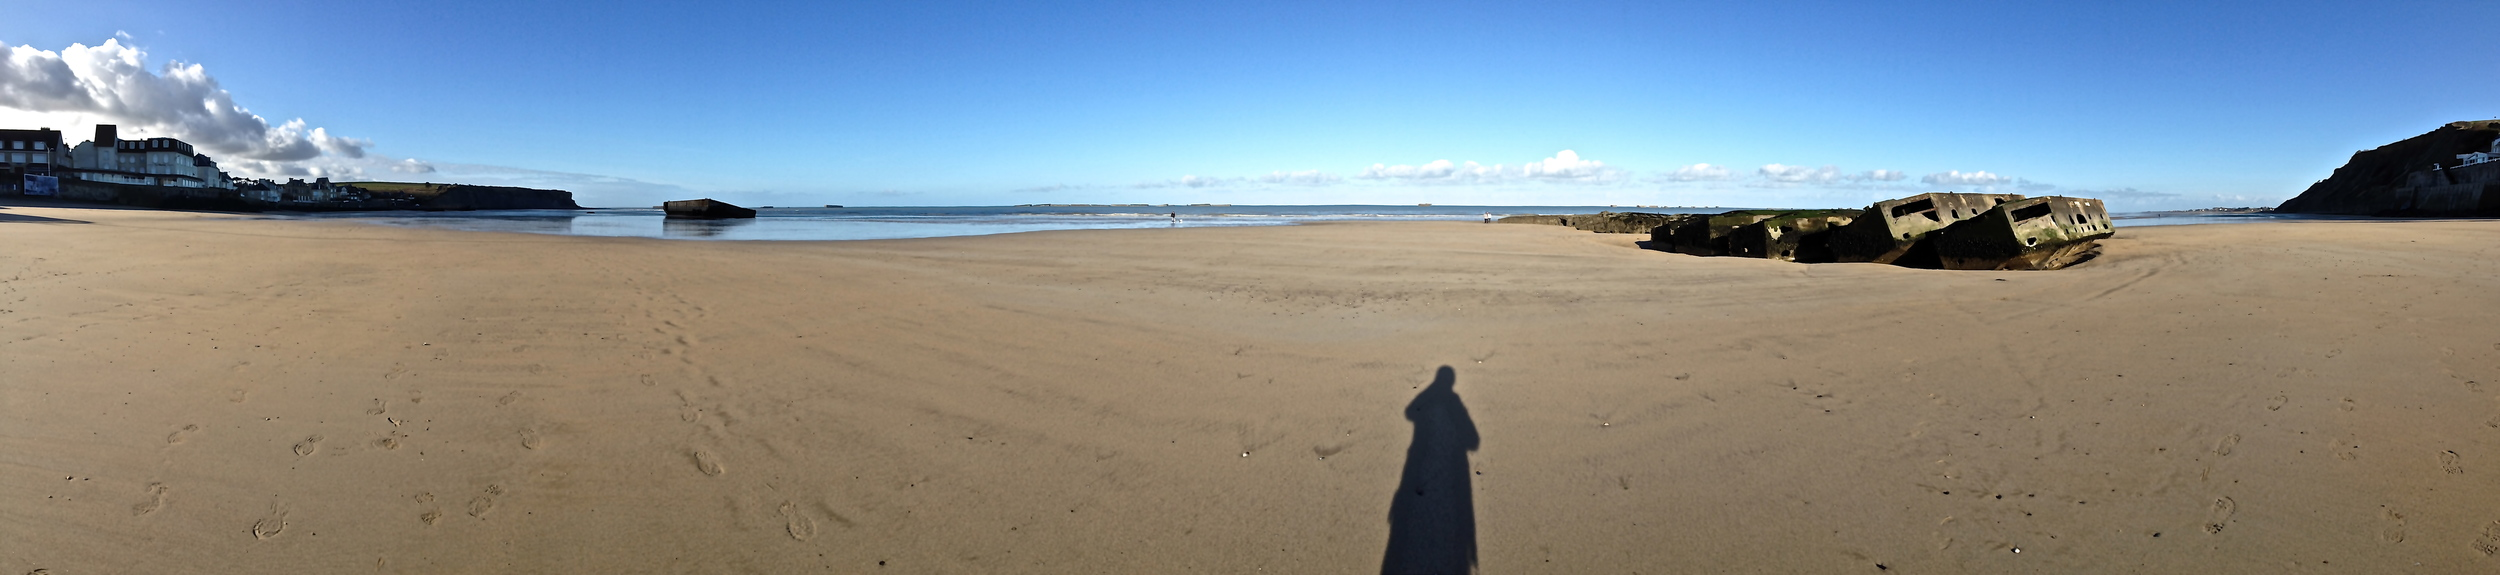 Solitary  Beaches of Normandie , Arromanches-les-Bains, January 11th, 2013